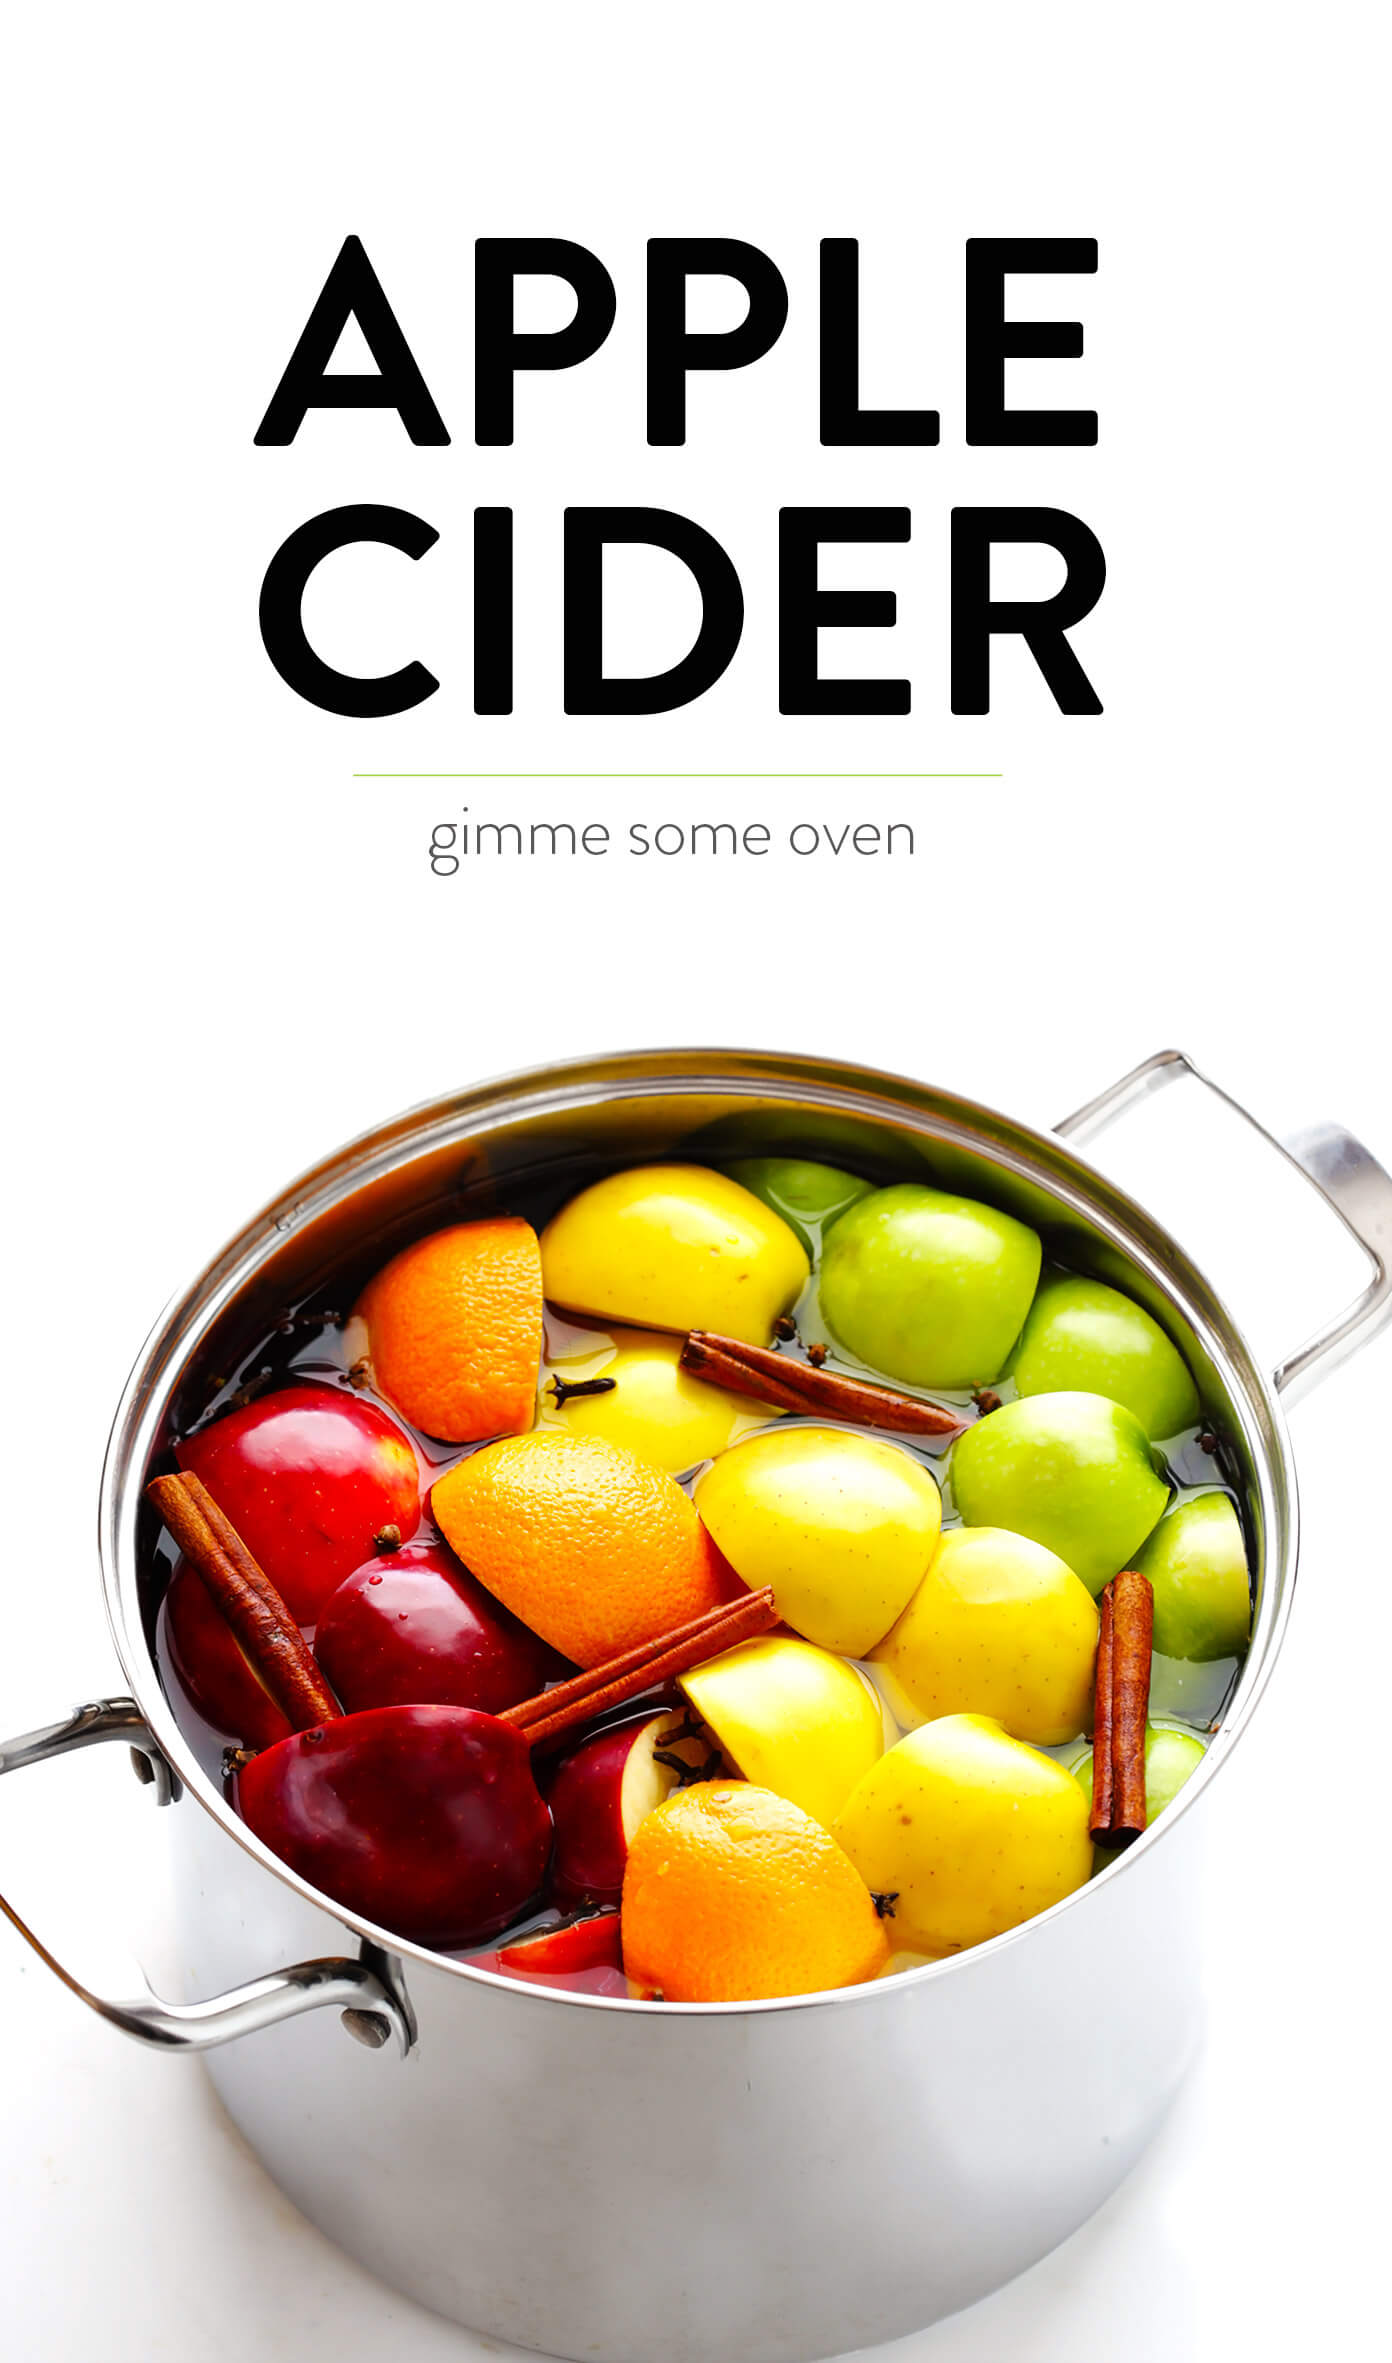 Easy Homemade Apple Cider Recipe | Stovetop, Instant Pot or Crock-Pot